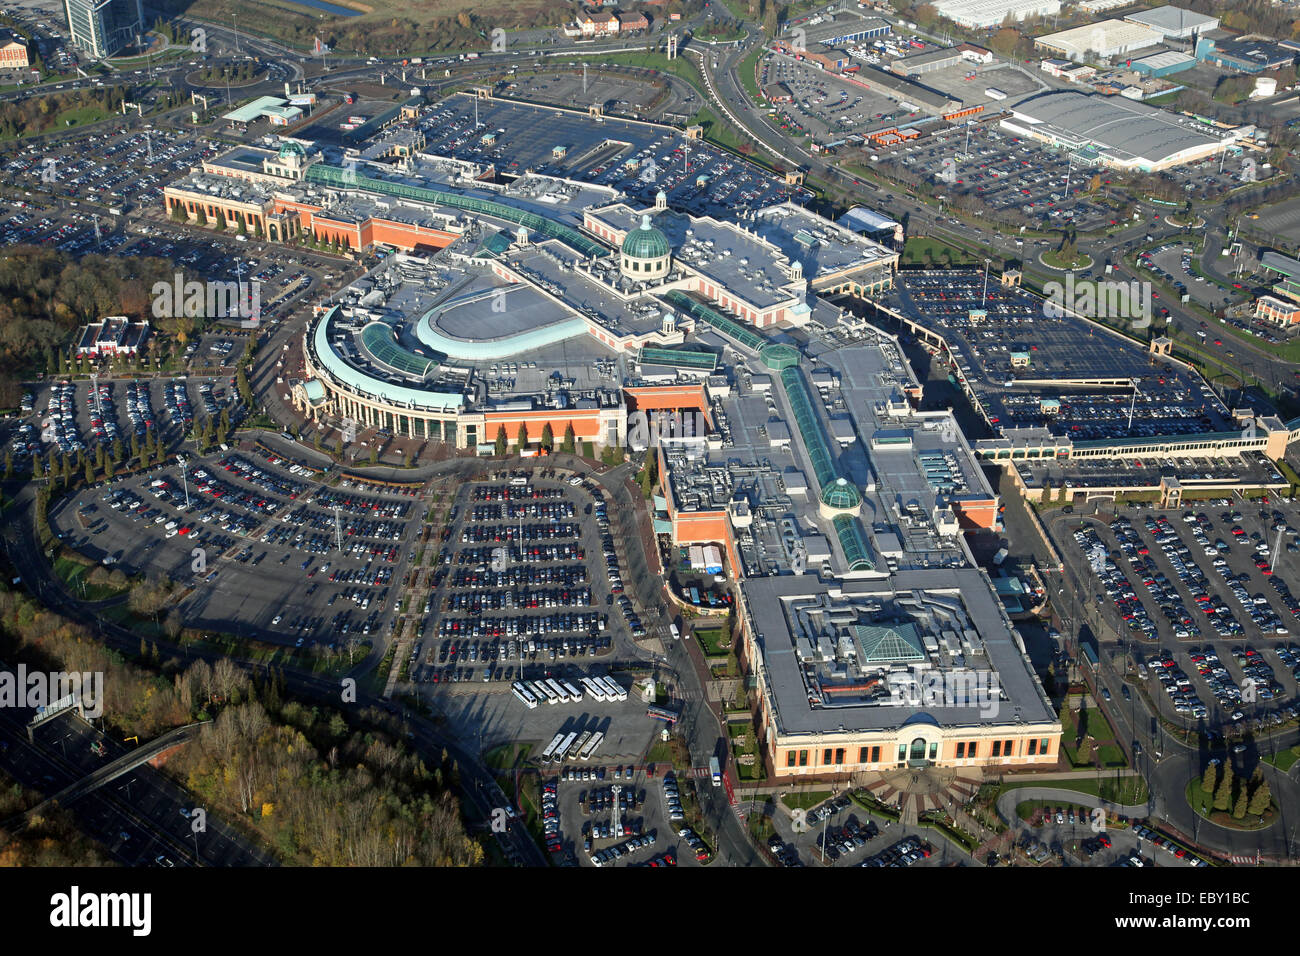 aerial view of The Trafford Centre in Manchester, UK - Stock Image